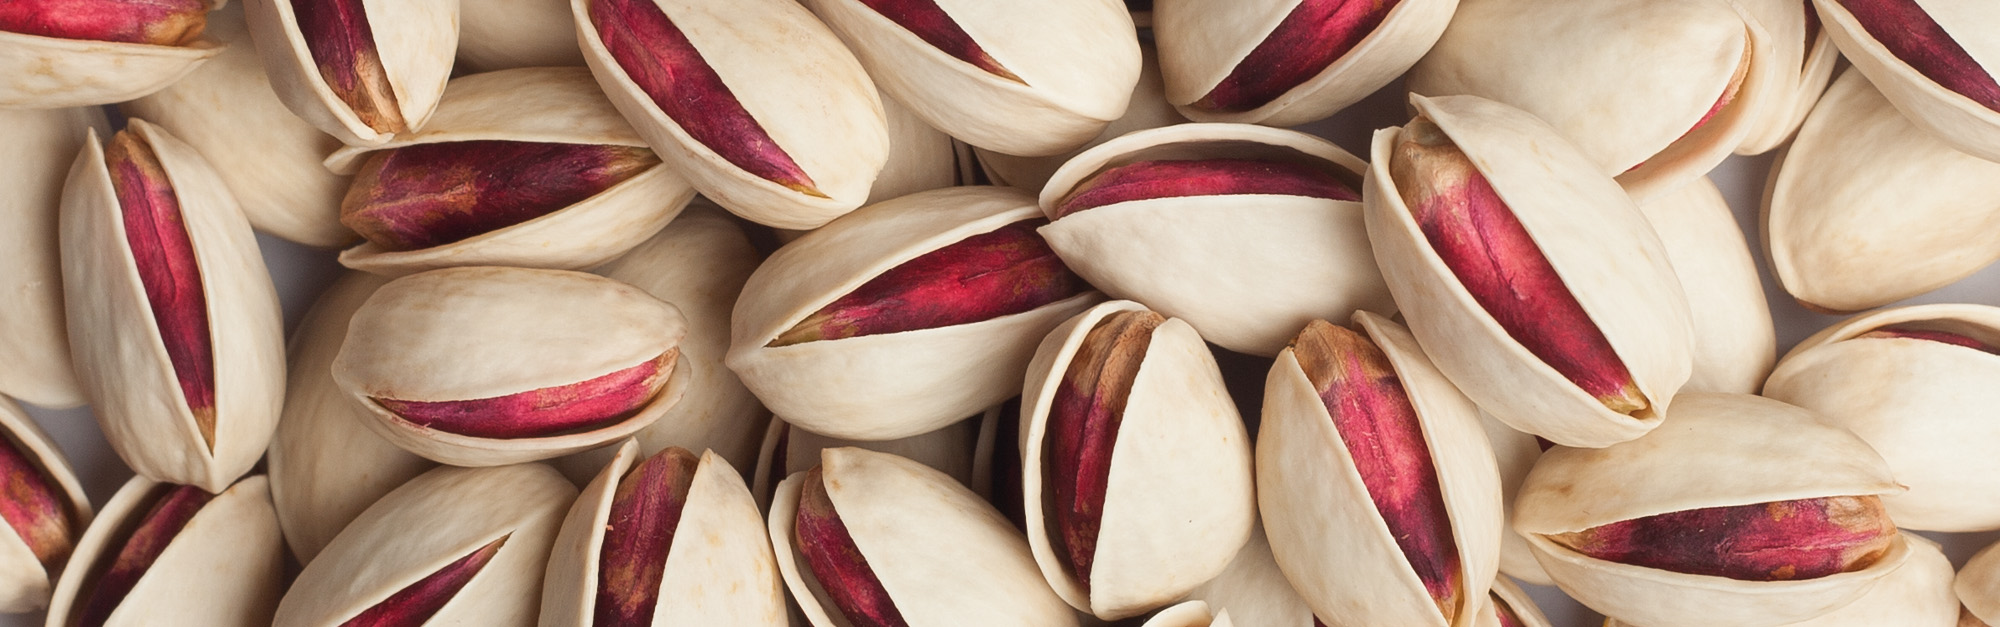 Pistachio Varieties and Packing